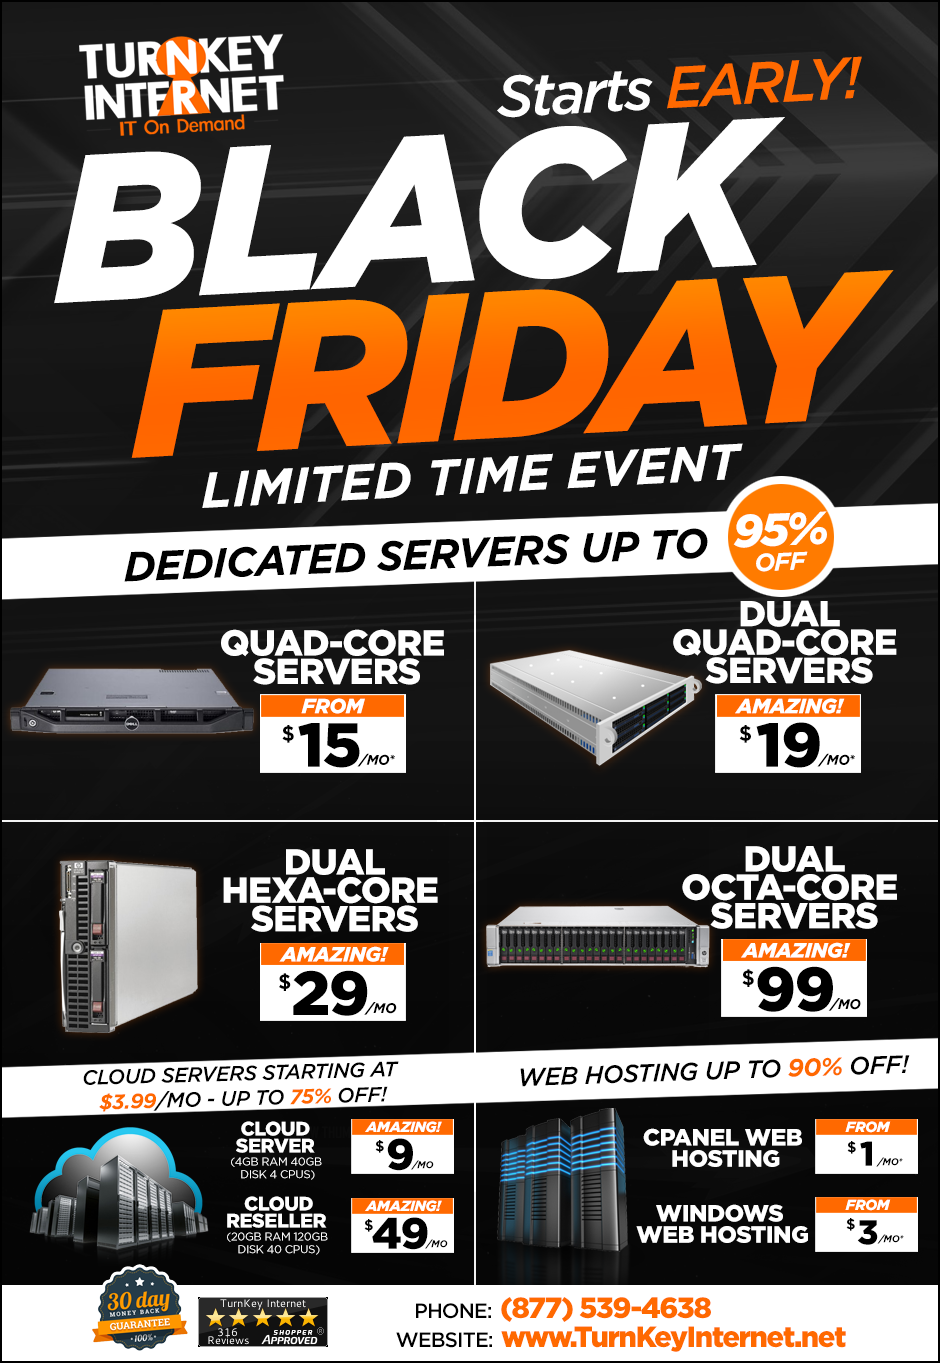 Black Friday Starts Early!